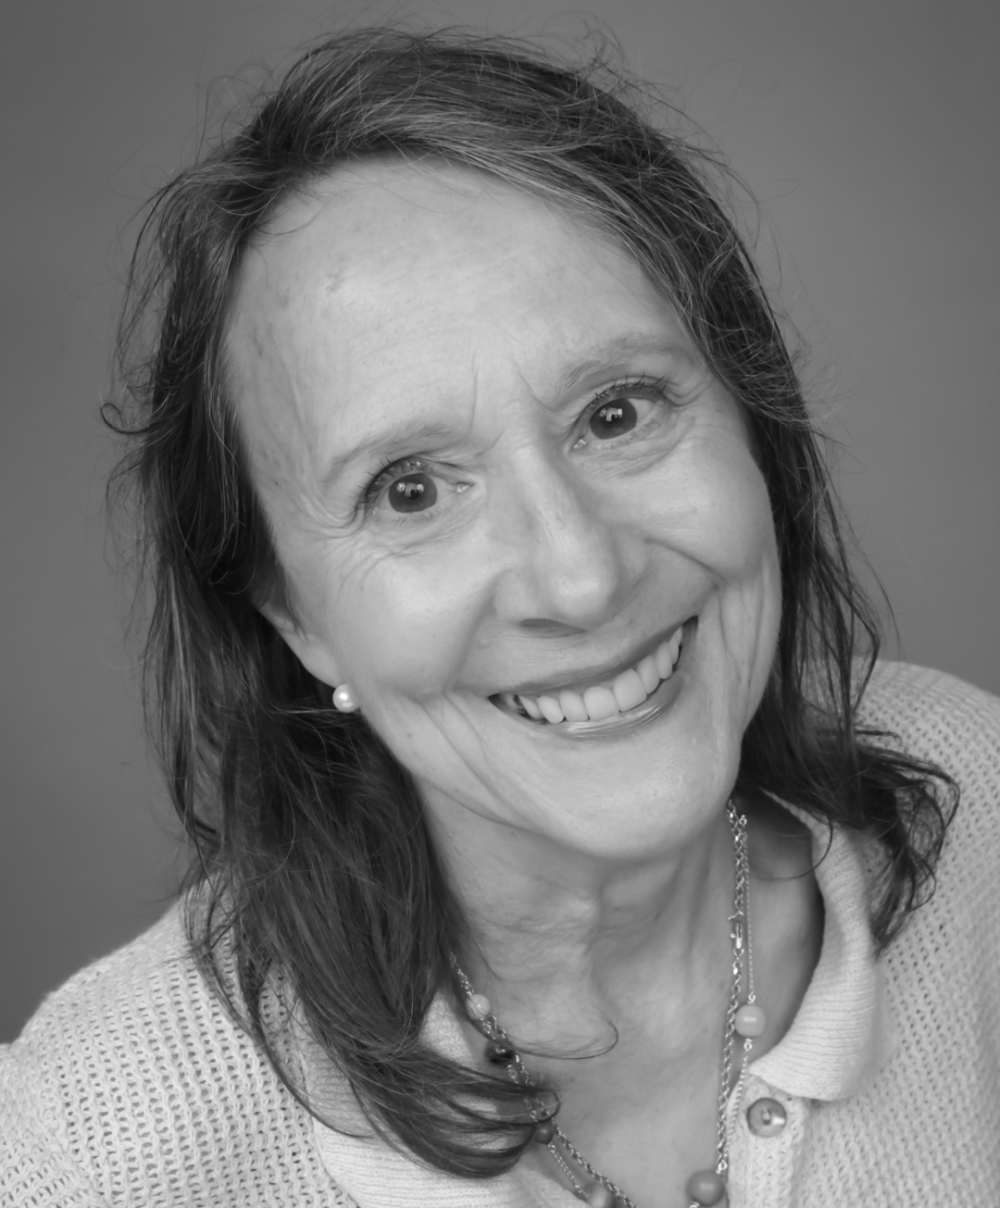 Black and white head shot of Way to Wellville founder Esther Dyson